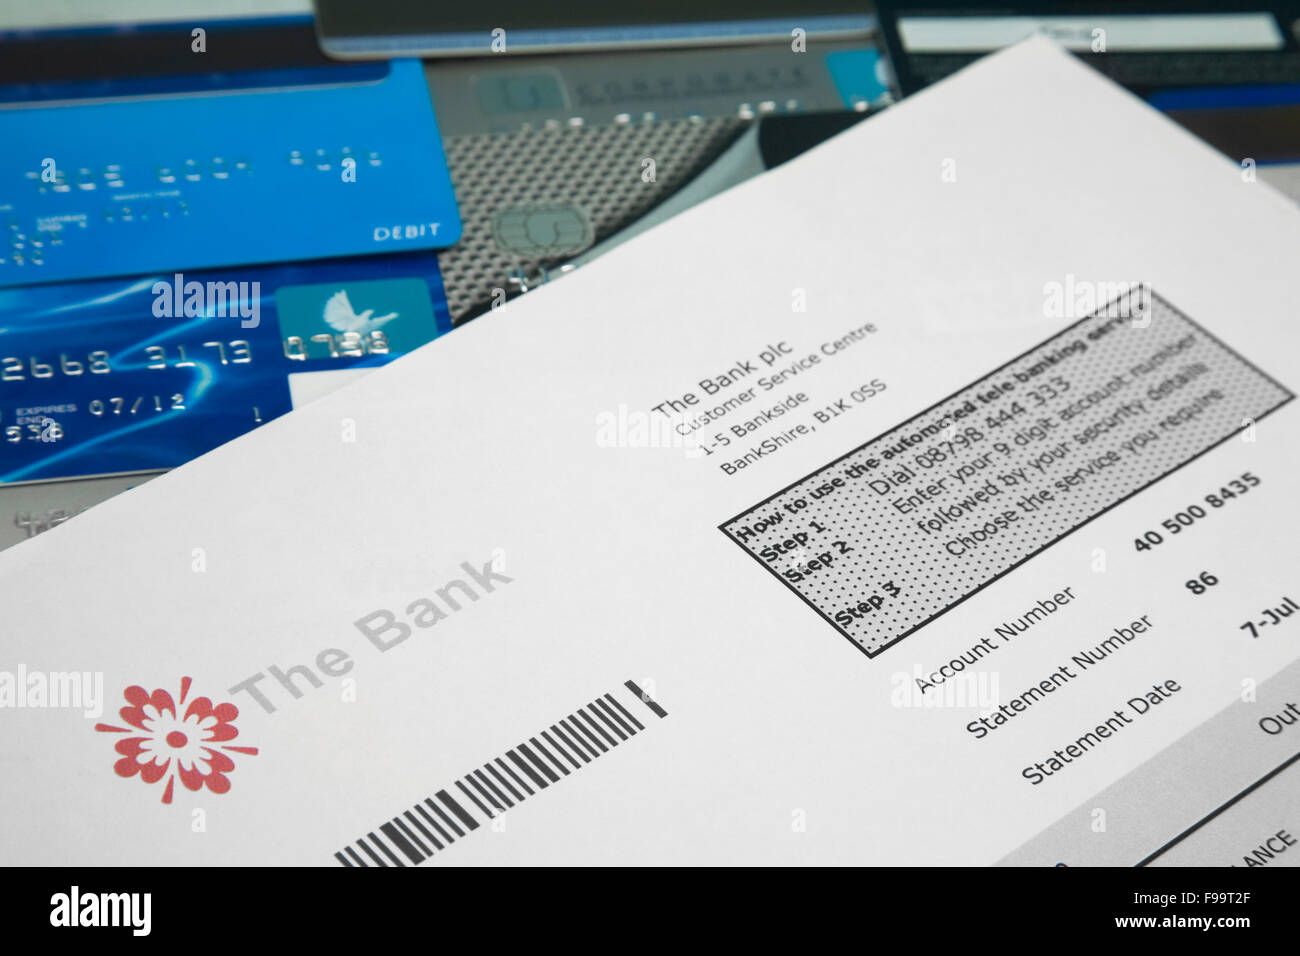 Fake Bank Statement On Top Of A Selection On Bank And Credit